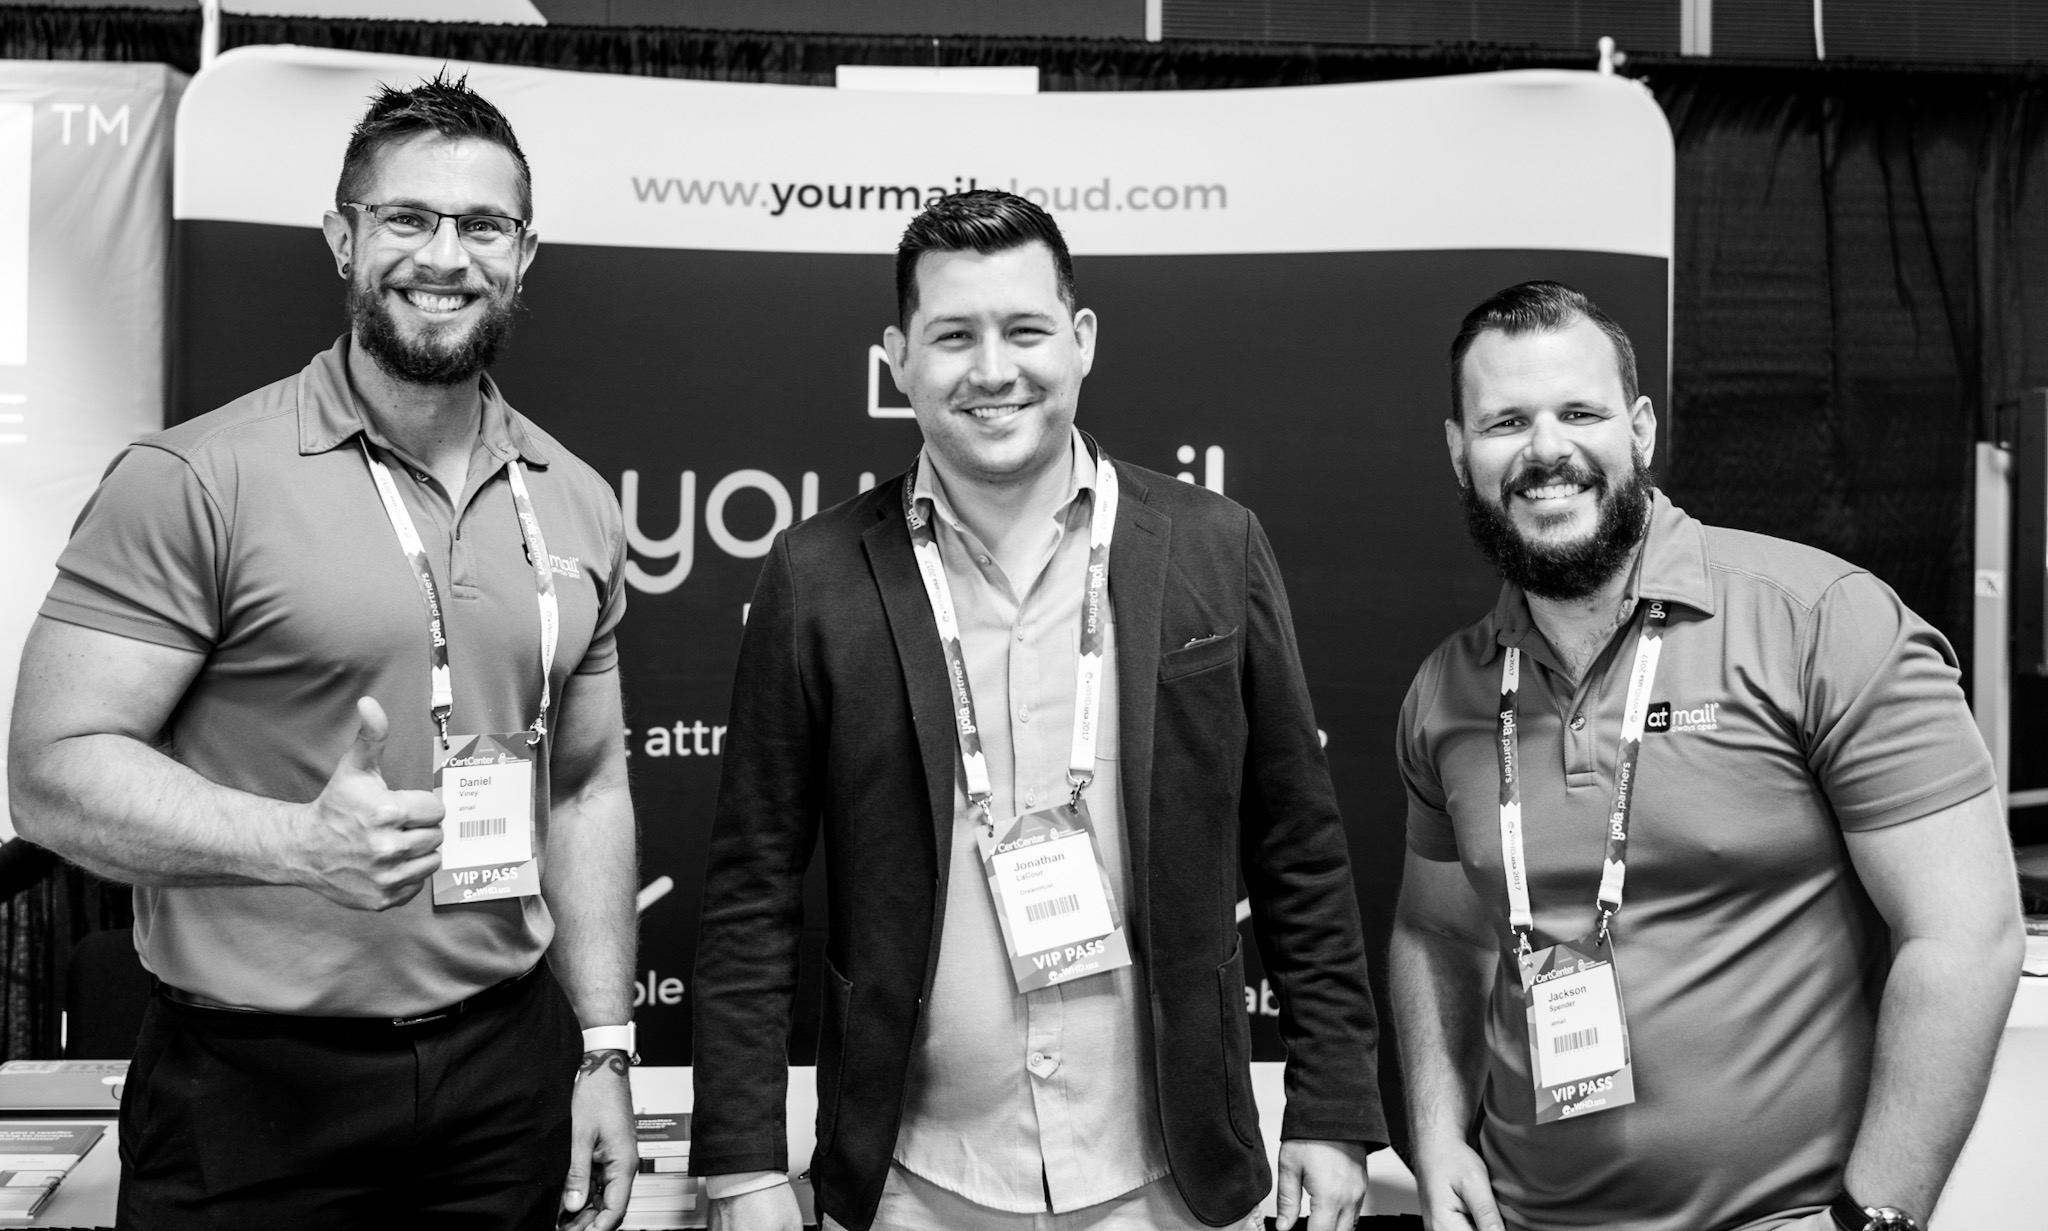 Dan Viney atmail, Jonathan LaCour from Dreamhost, Jackson Spender atmail